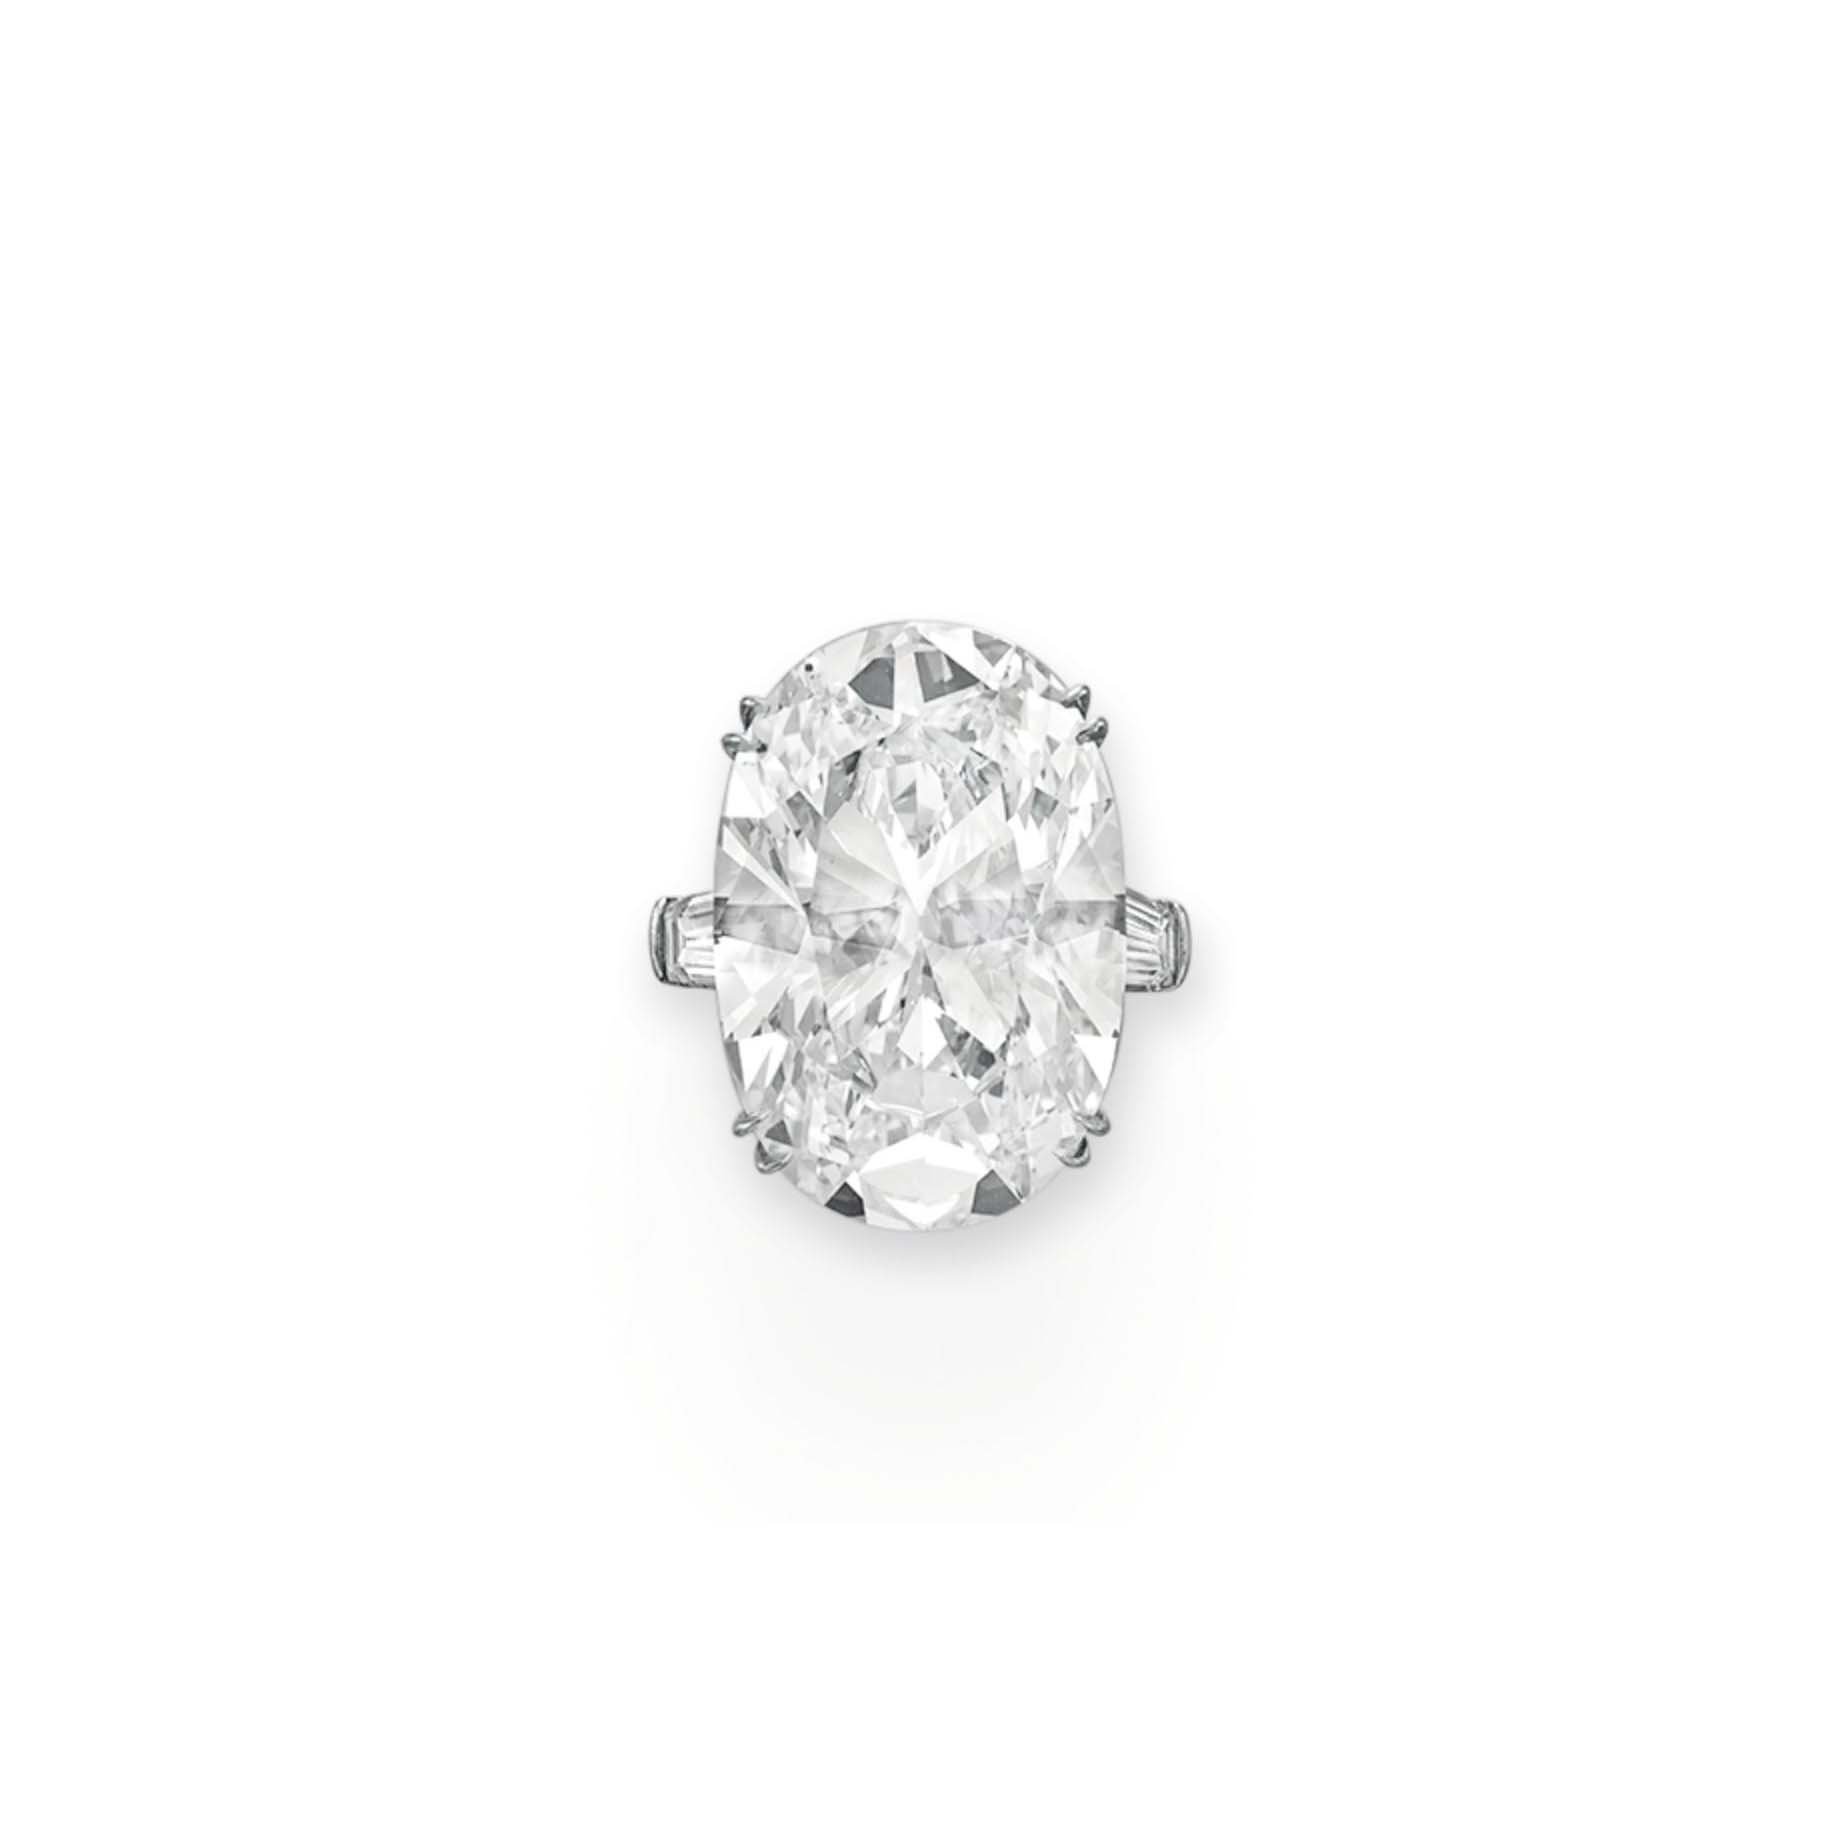 A MAGNIFICENT DIAMOND RING, BY BVLGARI